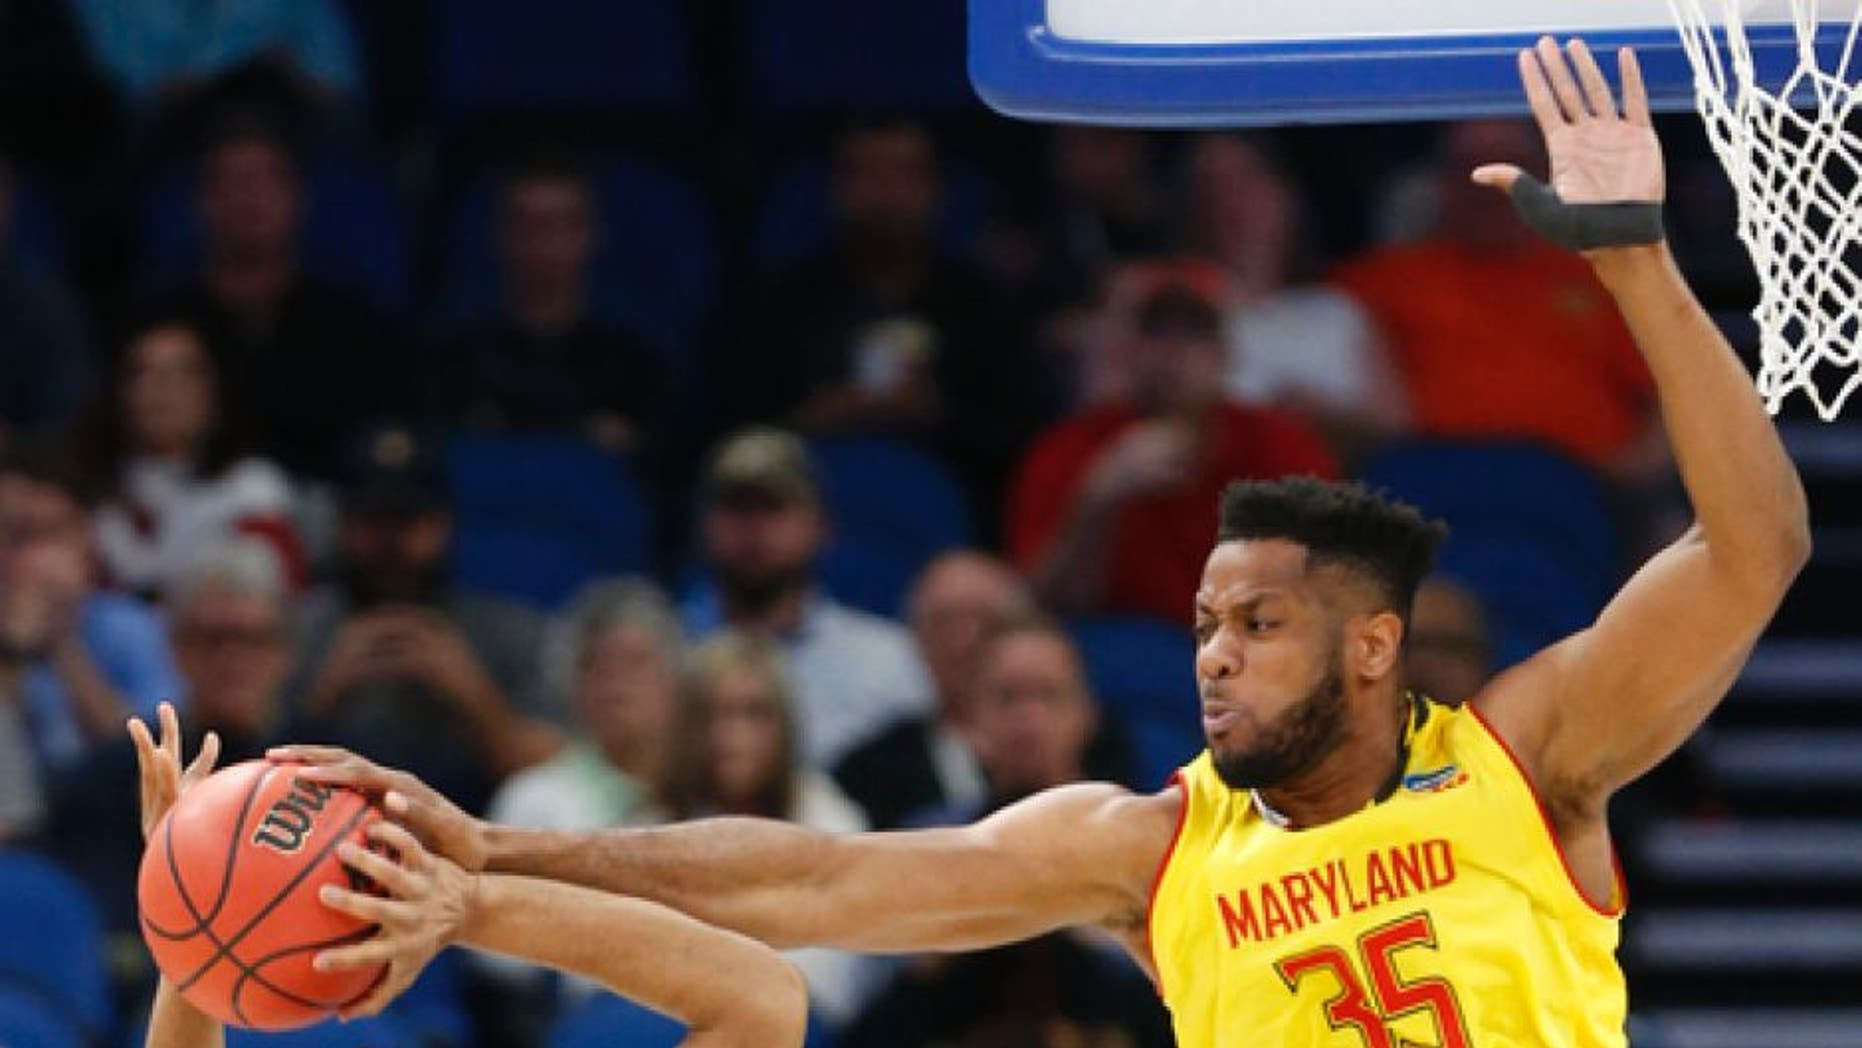 Maryland forward Damonte Dodd (35) blocks a shot from Xavier guard Trevon Bluiett (5) during the first half of the first round of the NCAA college basketball tournament, Thursday, March 16, 2017 in Orlando, Fla. (AP Photo/Wilfredo Lee)